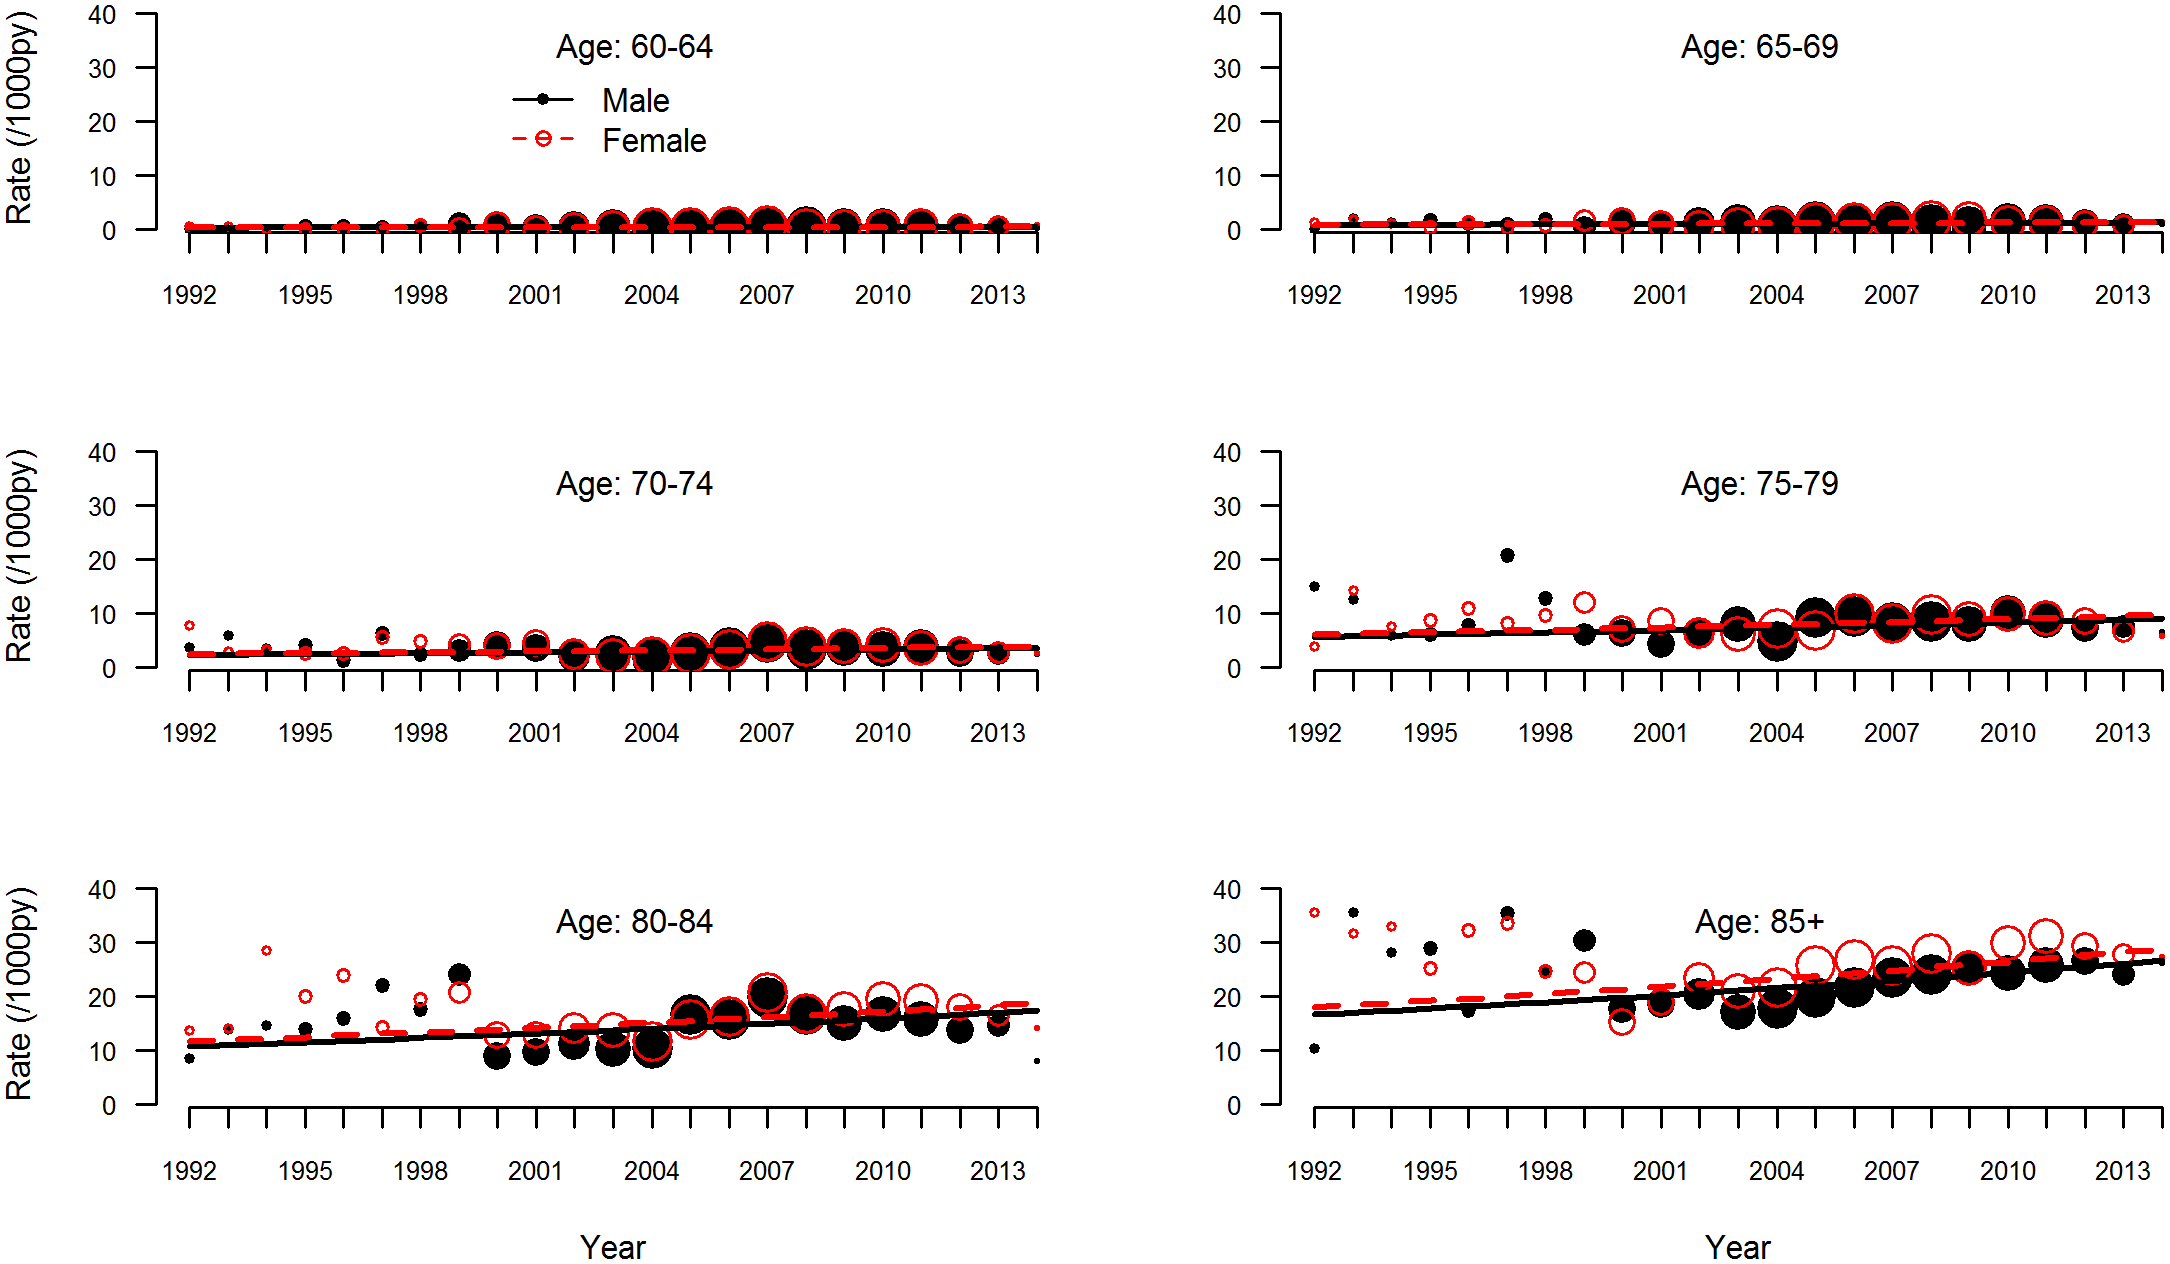 Dementia incidence rate by age group.